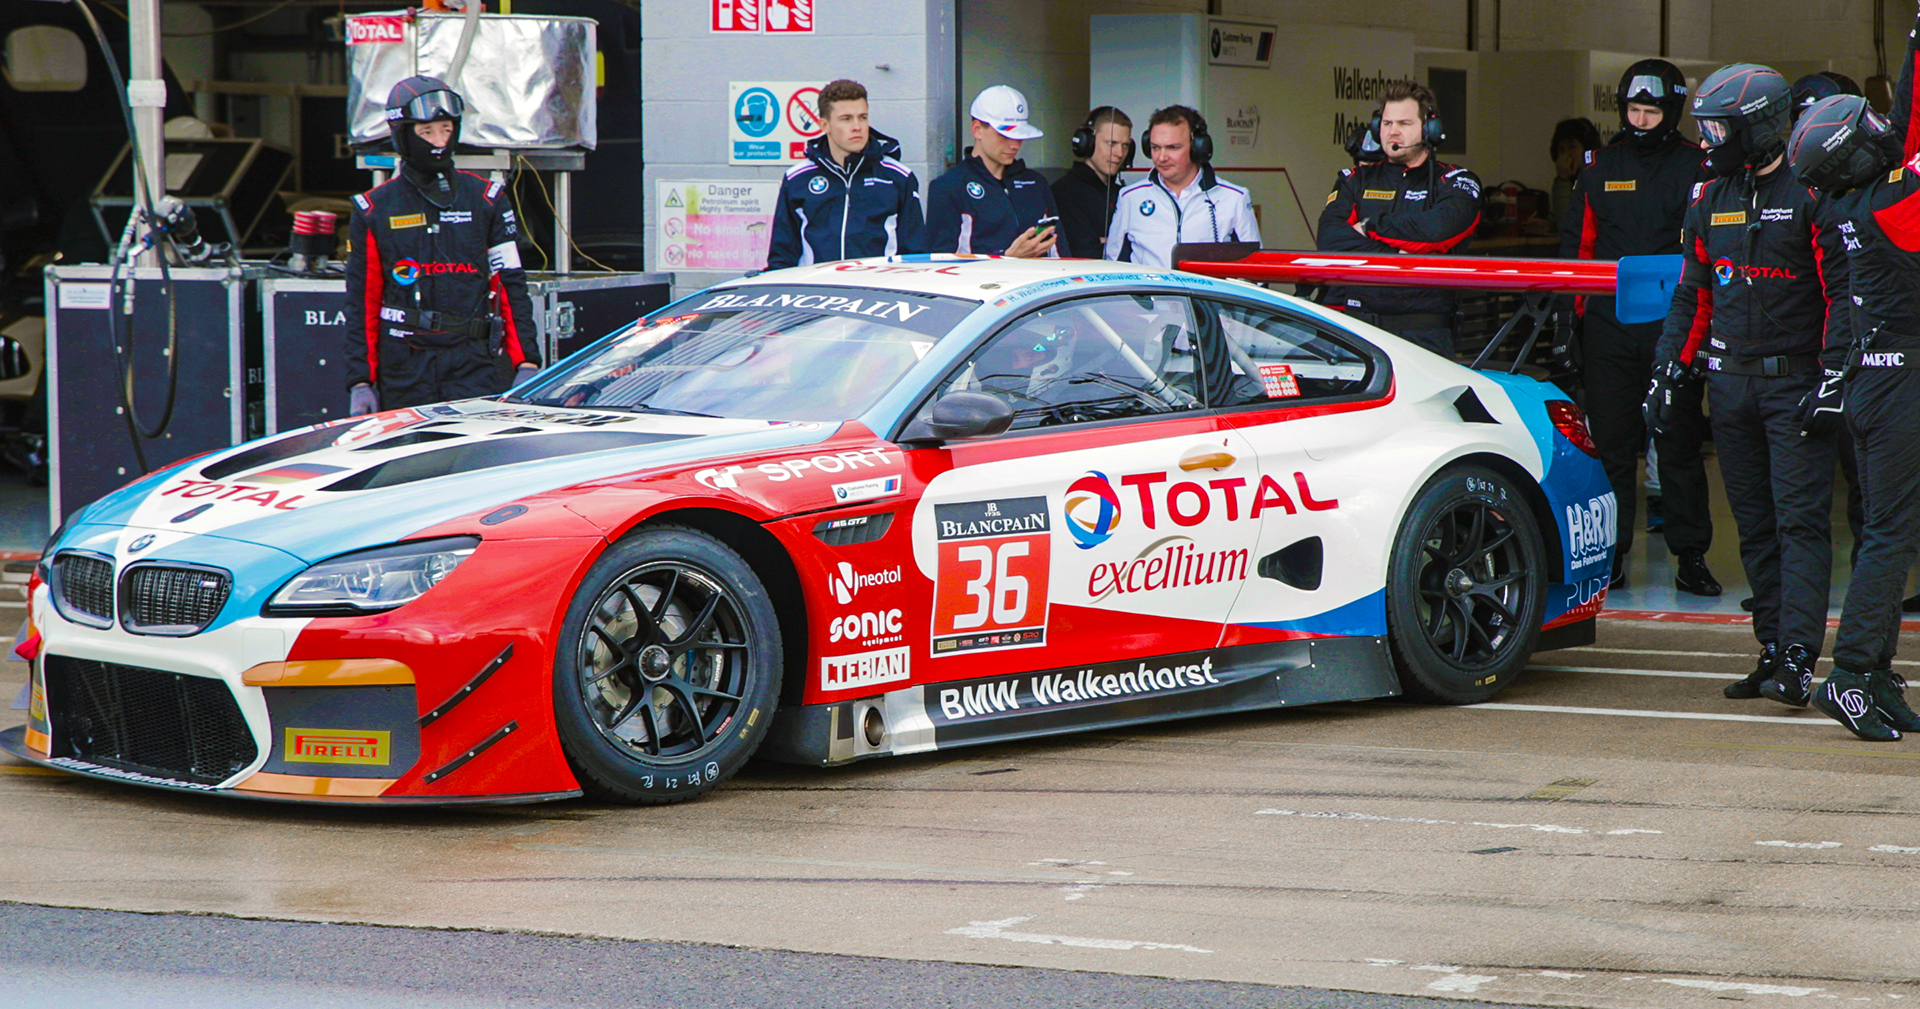 Total Bmw M6 Gt3 Walkenhorst Motorsport